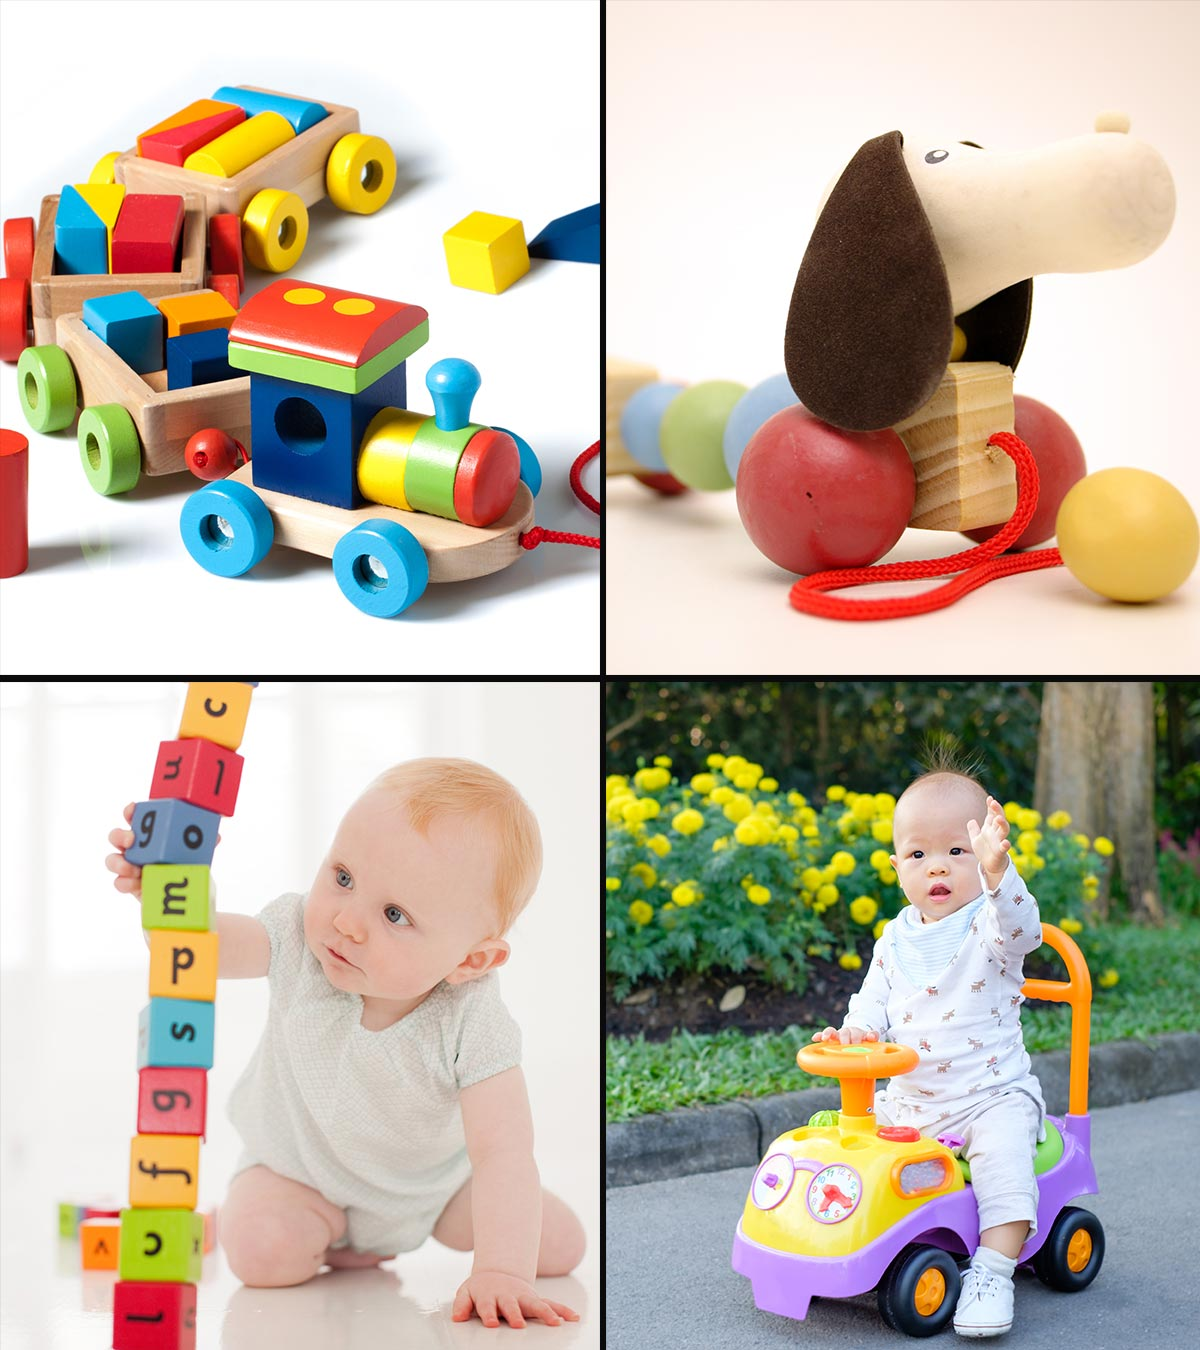 19 Best Gifts For 1 Year Old Baby